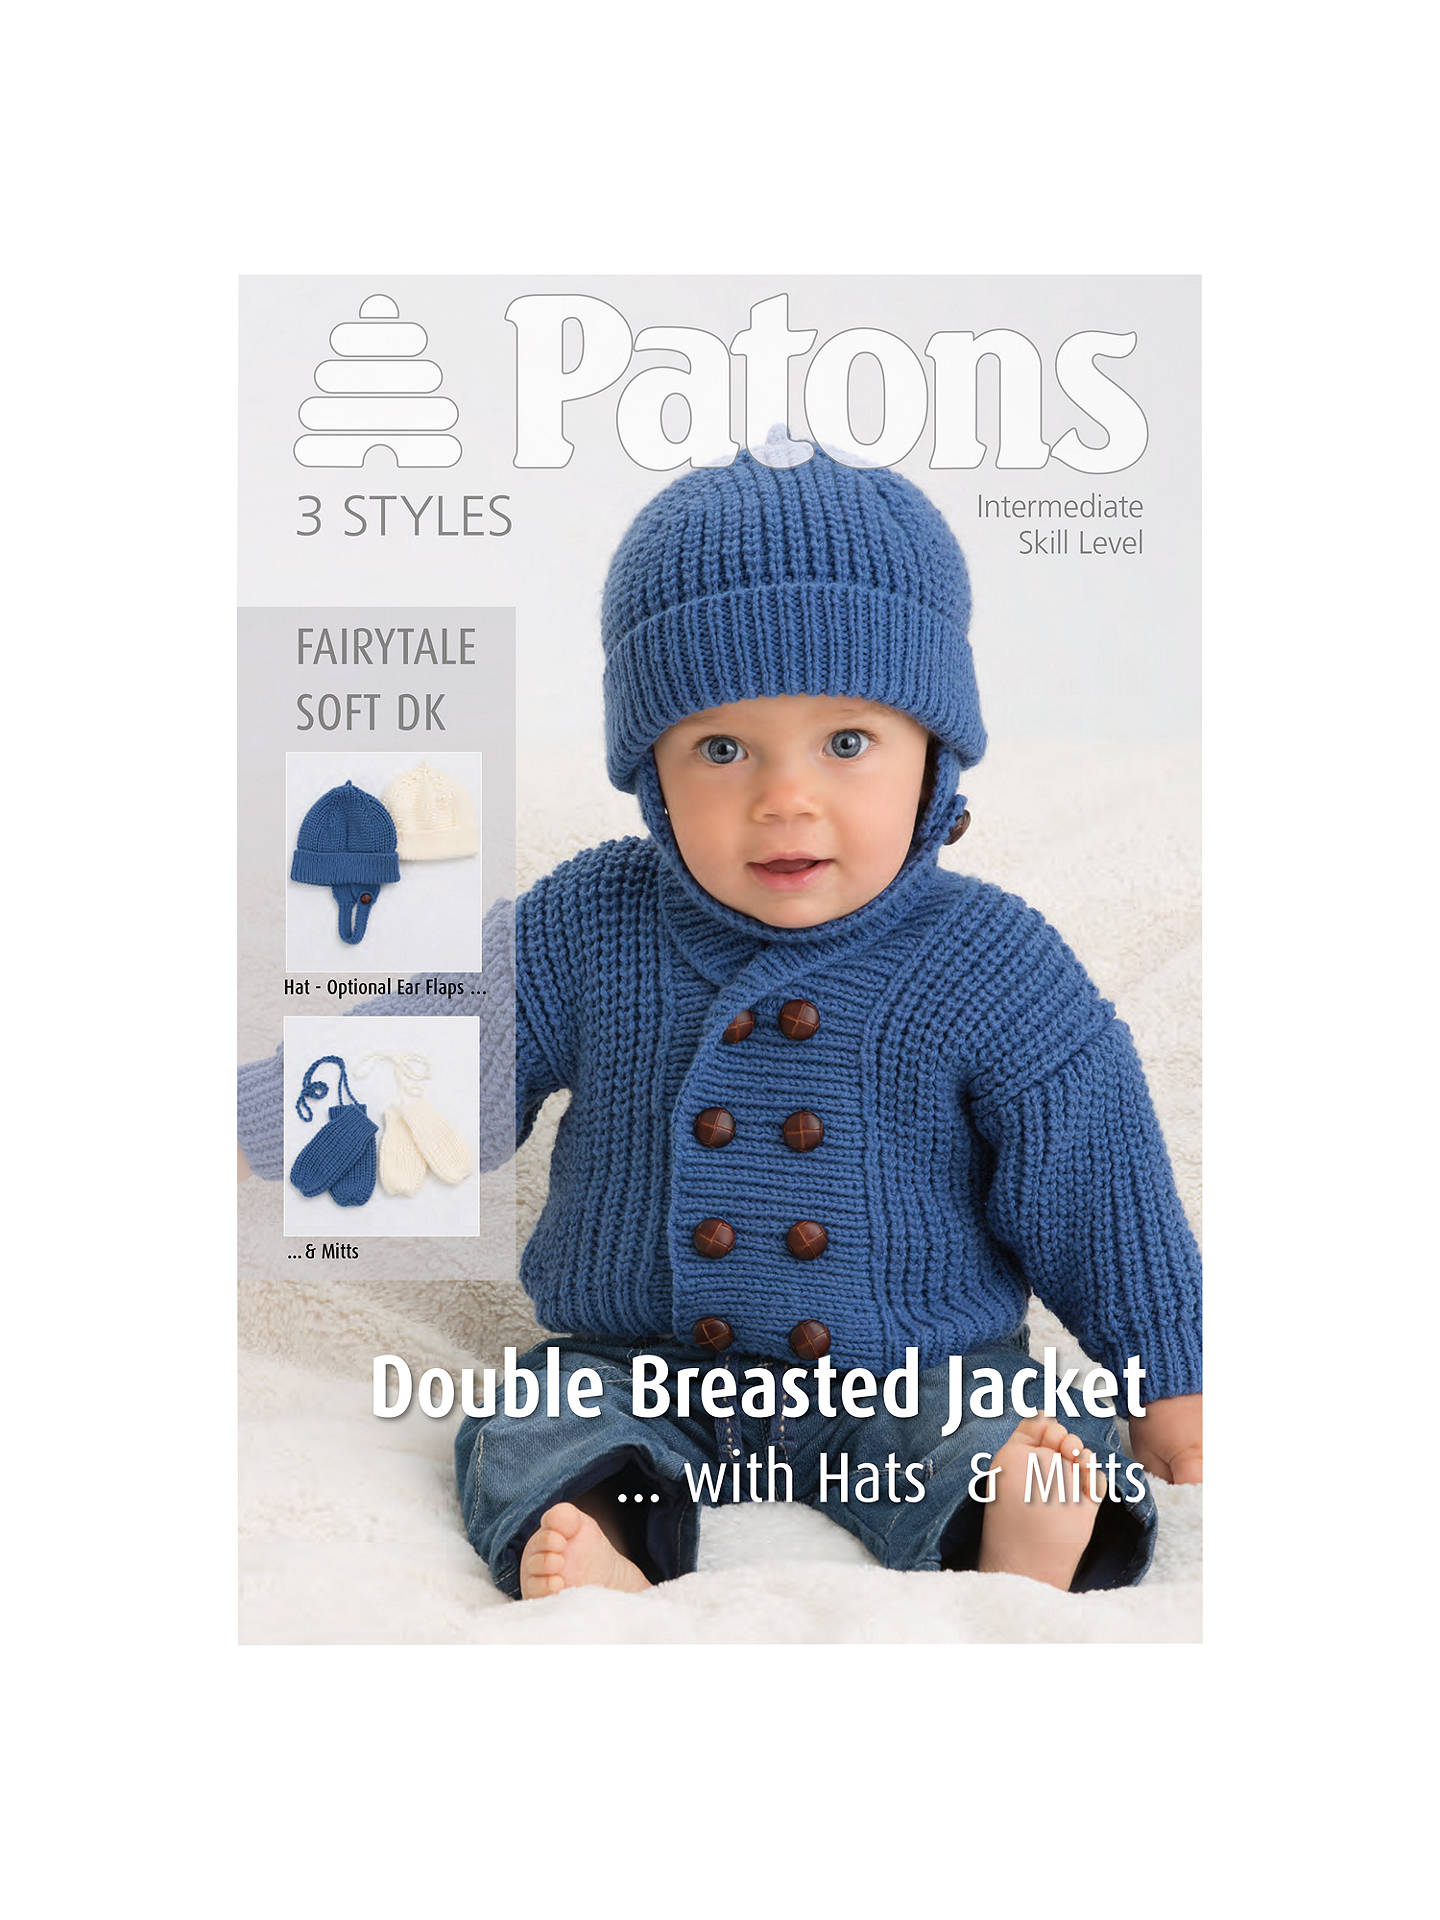 Patons Dk Double Breasted Jacket Knitting Pattern At John Lewis